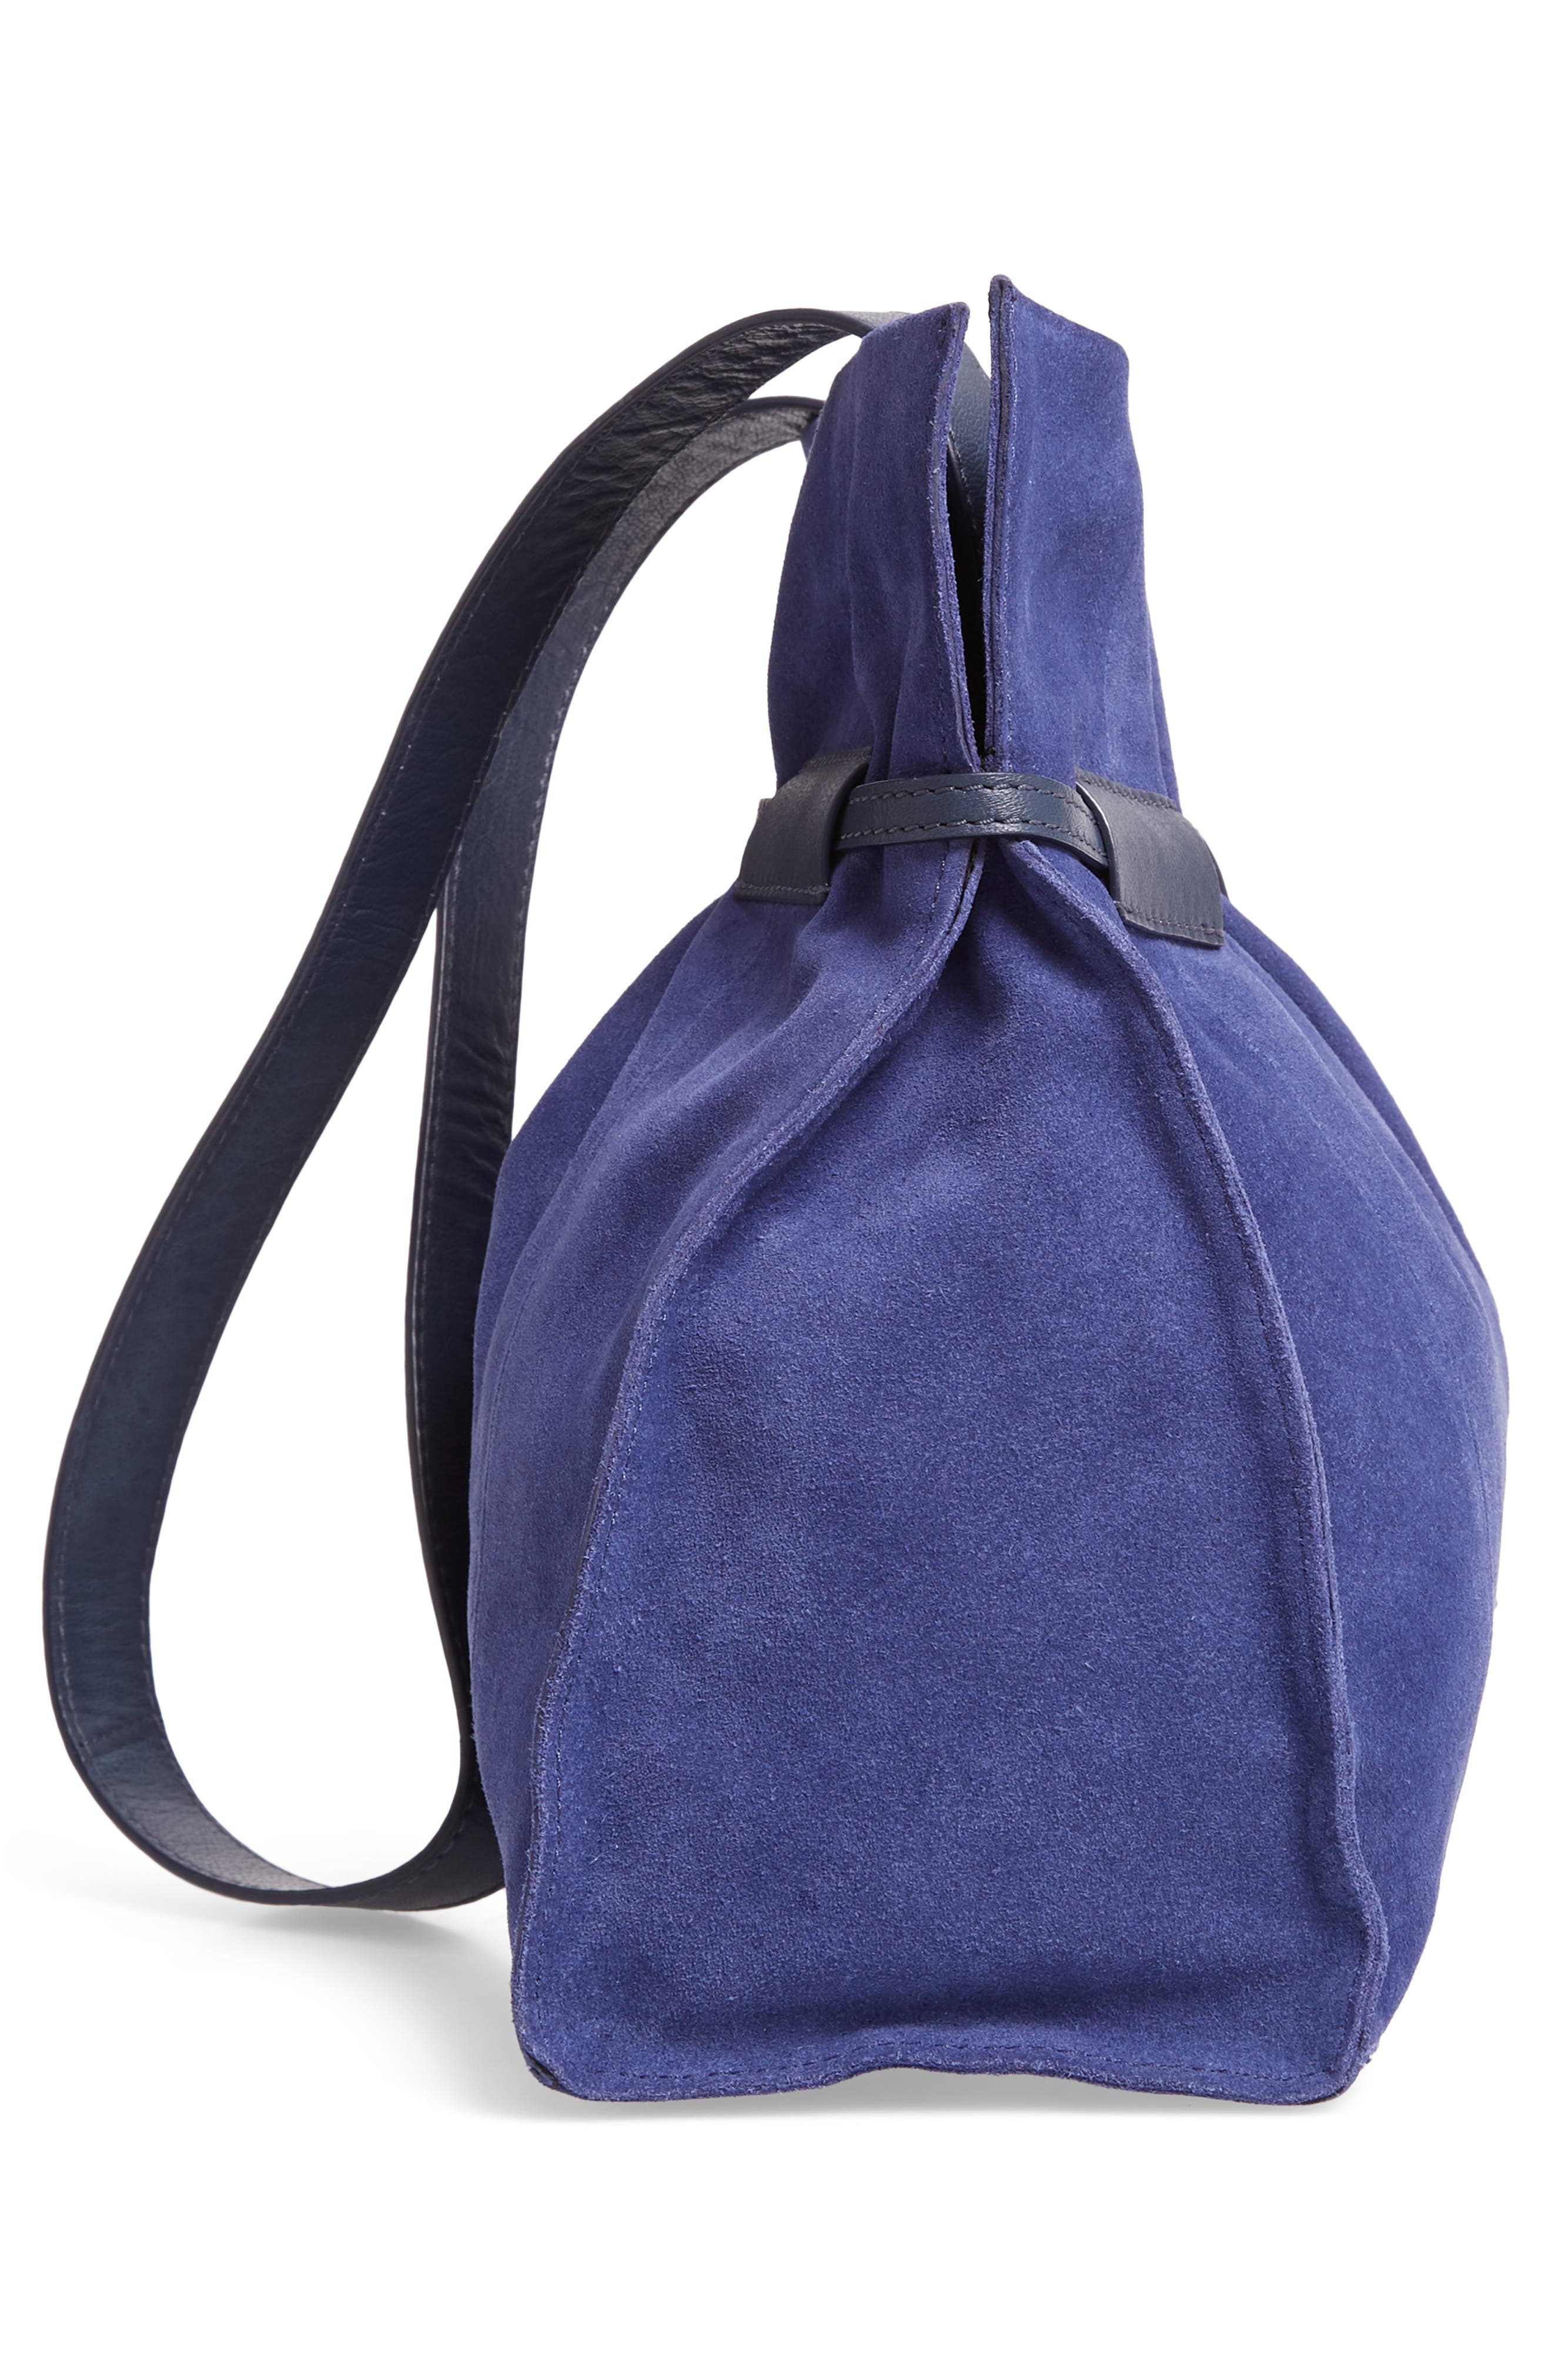 Pull String Faux Leather Bucket Bag,                             Alternate thumbnail 5, color,                             BLUE